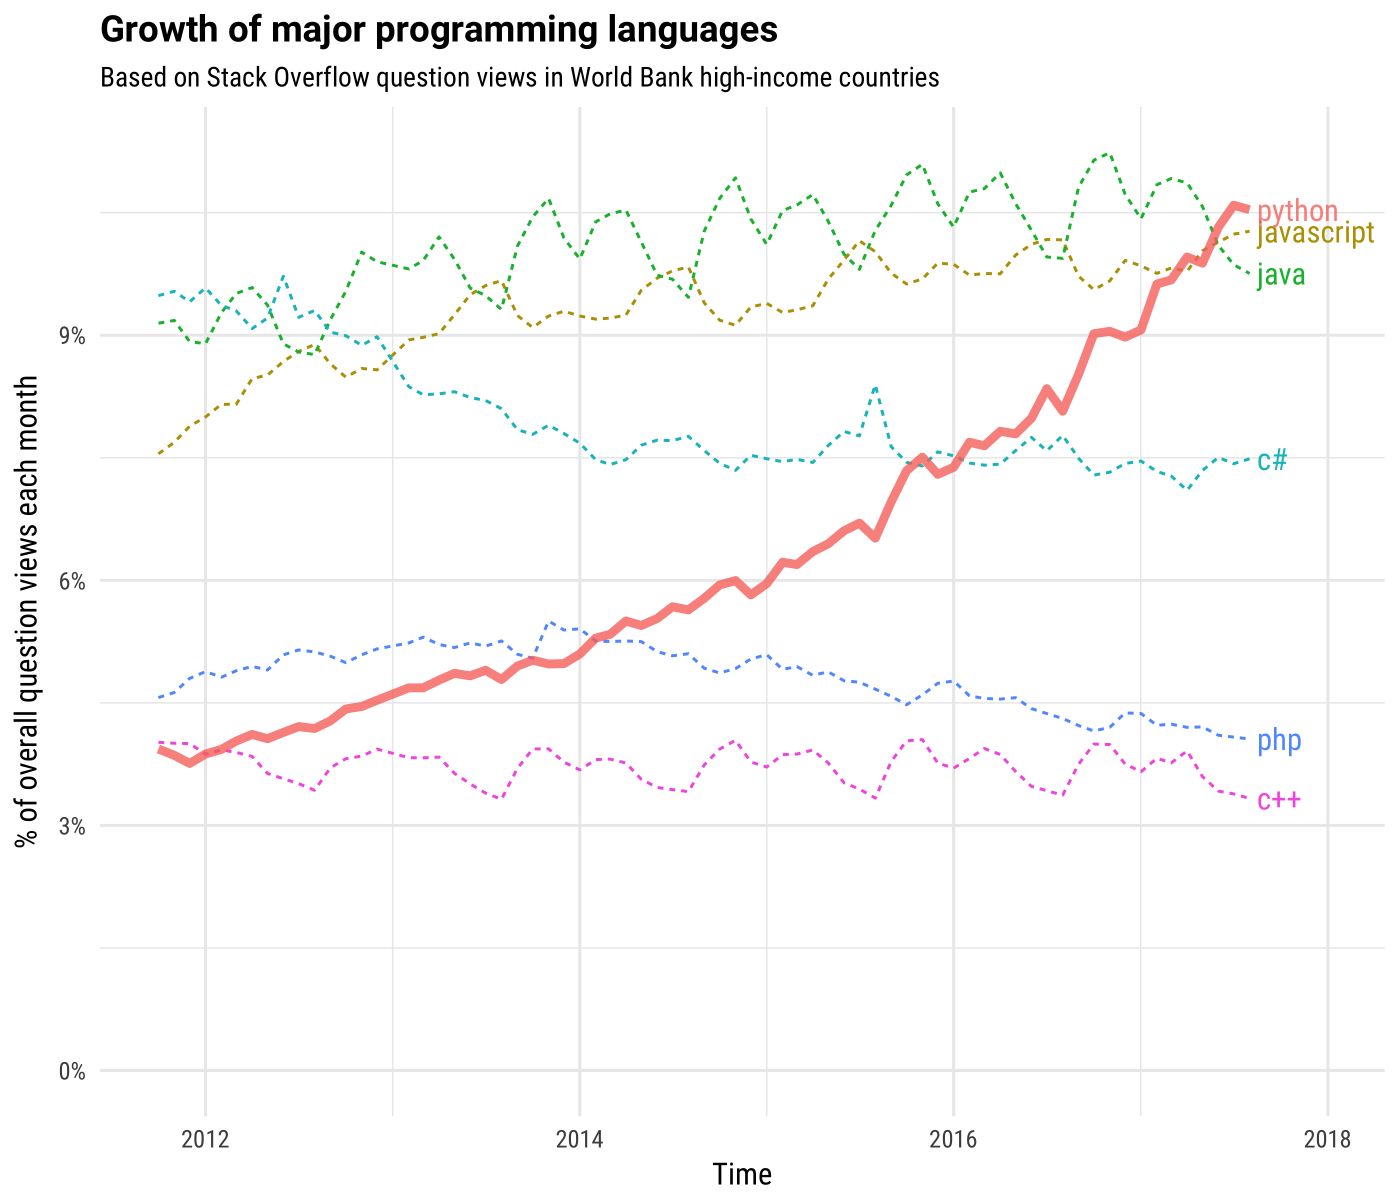 Growth of Popular Programming Languages Over a Six Year Period - Courtesy of StackOverflow